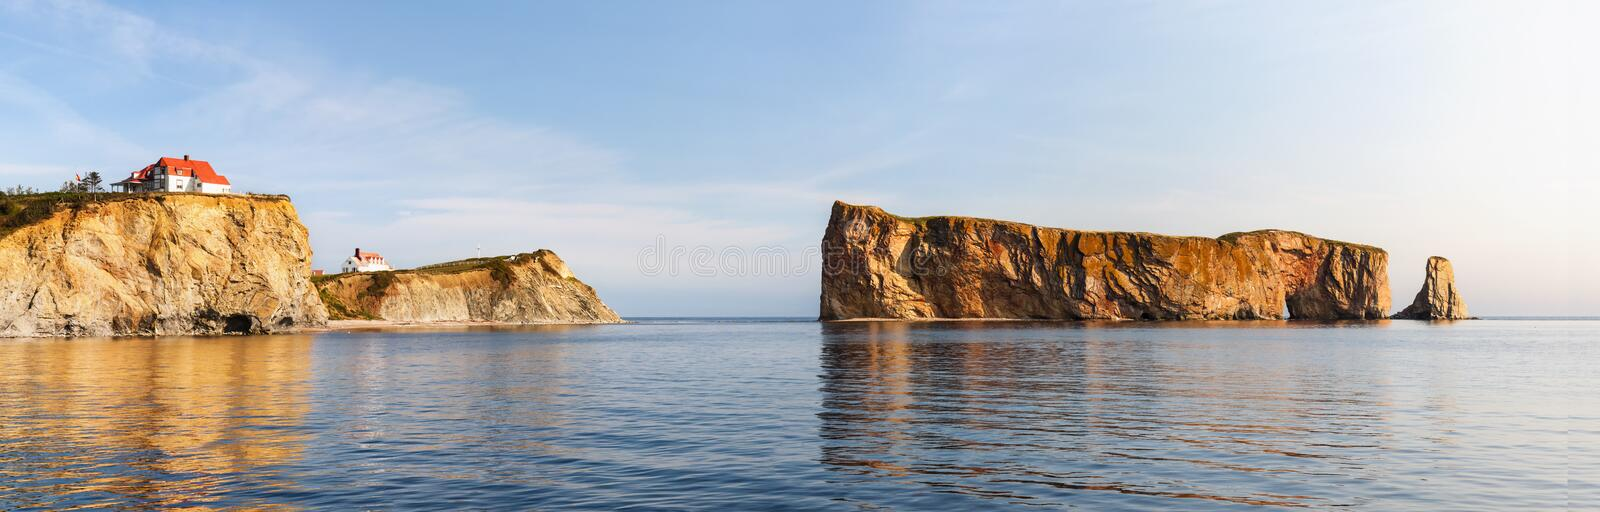 Perce Rock at Gaspe Peninsula. Perce Rock or Rocher Perc� view with reflections at Gaspe Peninsula coast in Quebec, Canada stock image